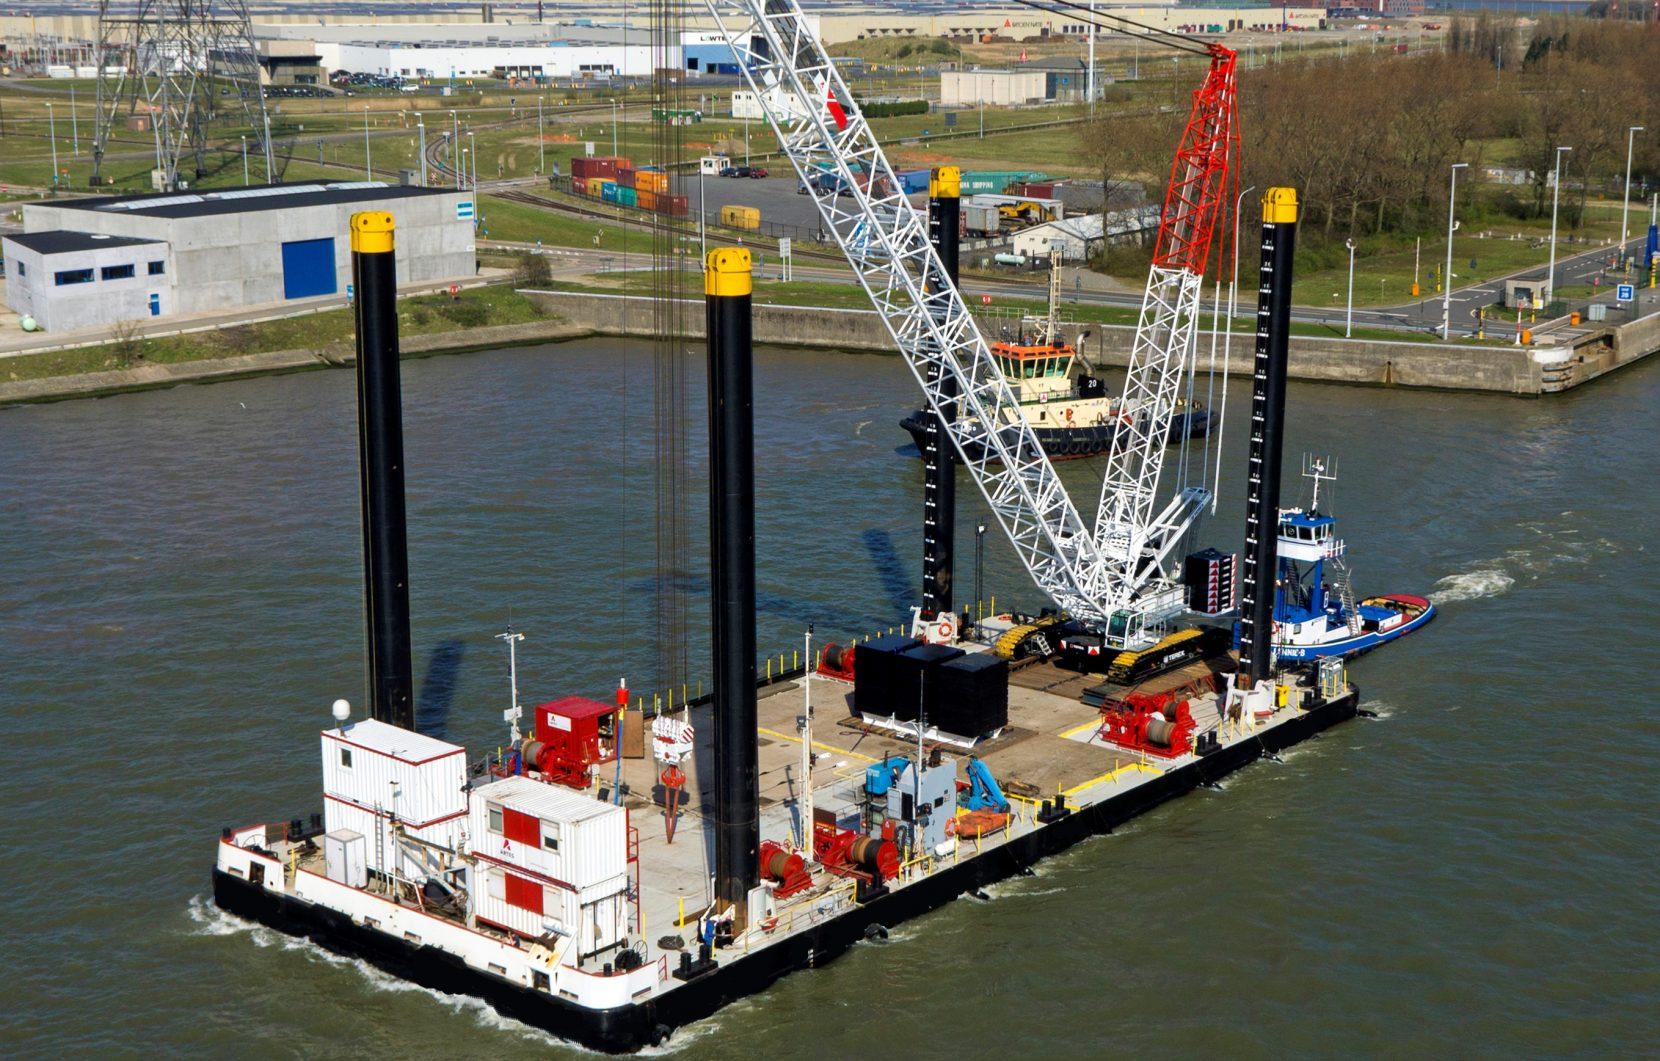 SPUDRAISING BARGE FOR CHARTER / 55 x 24m / 600t Crane